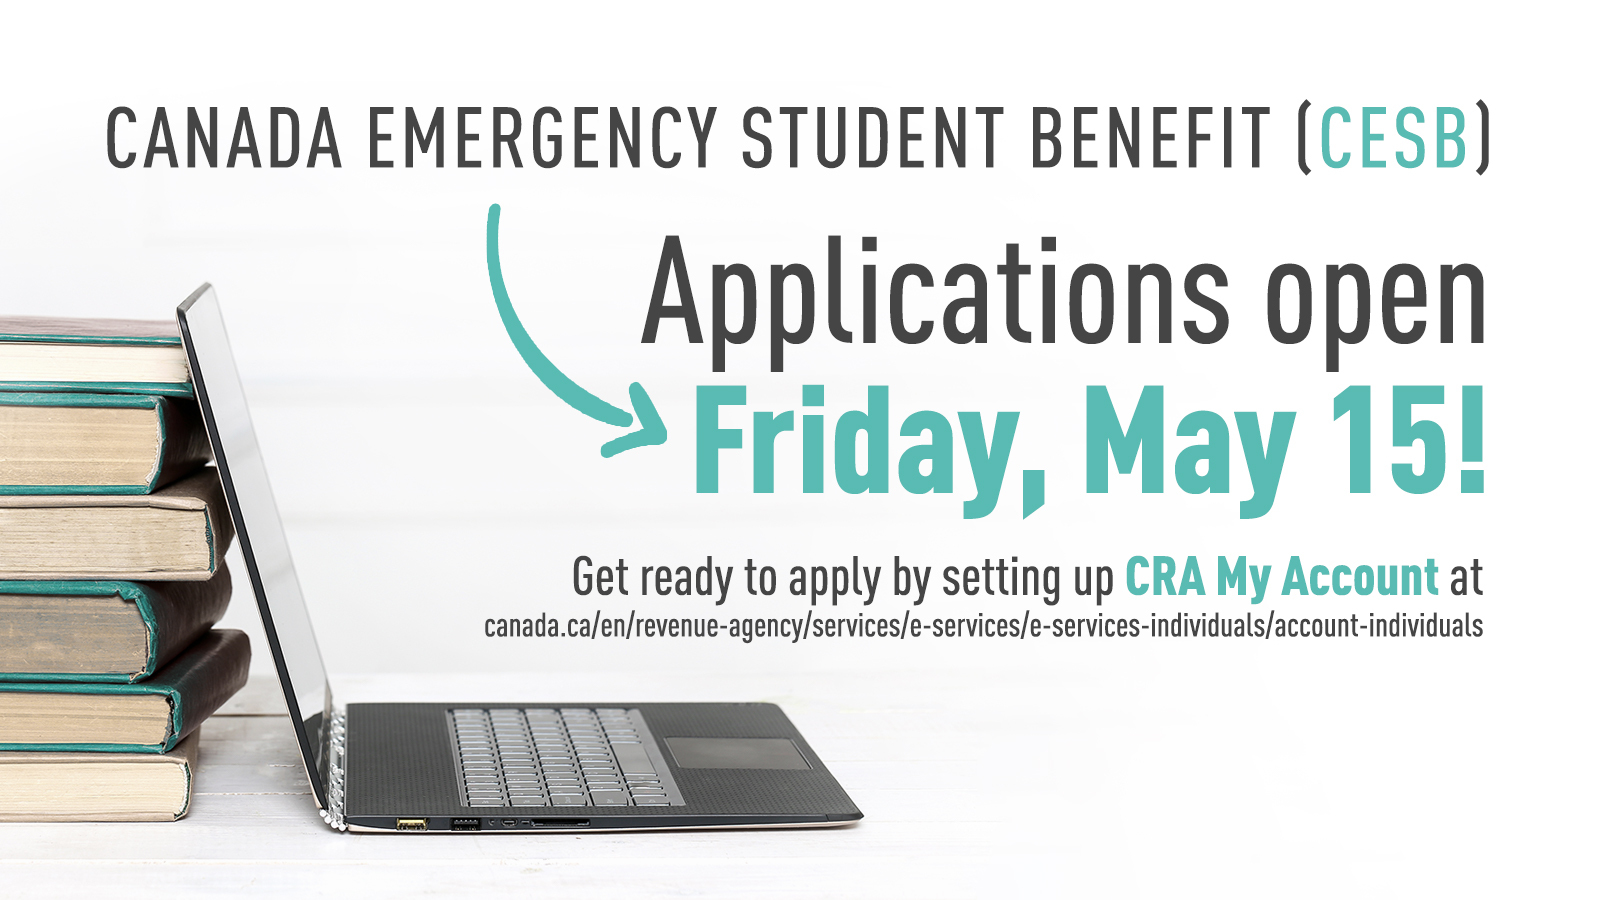 Apply tomorrow for the Canada Emergency Student Benefit